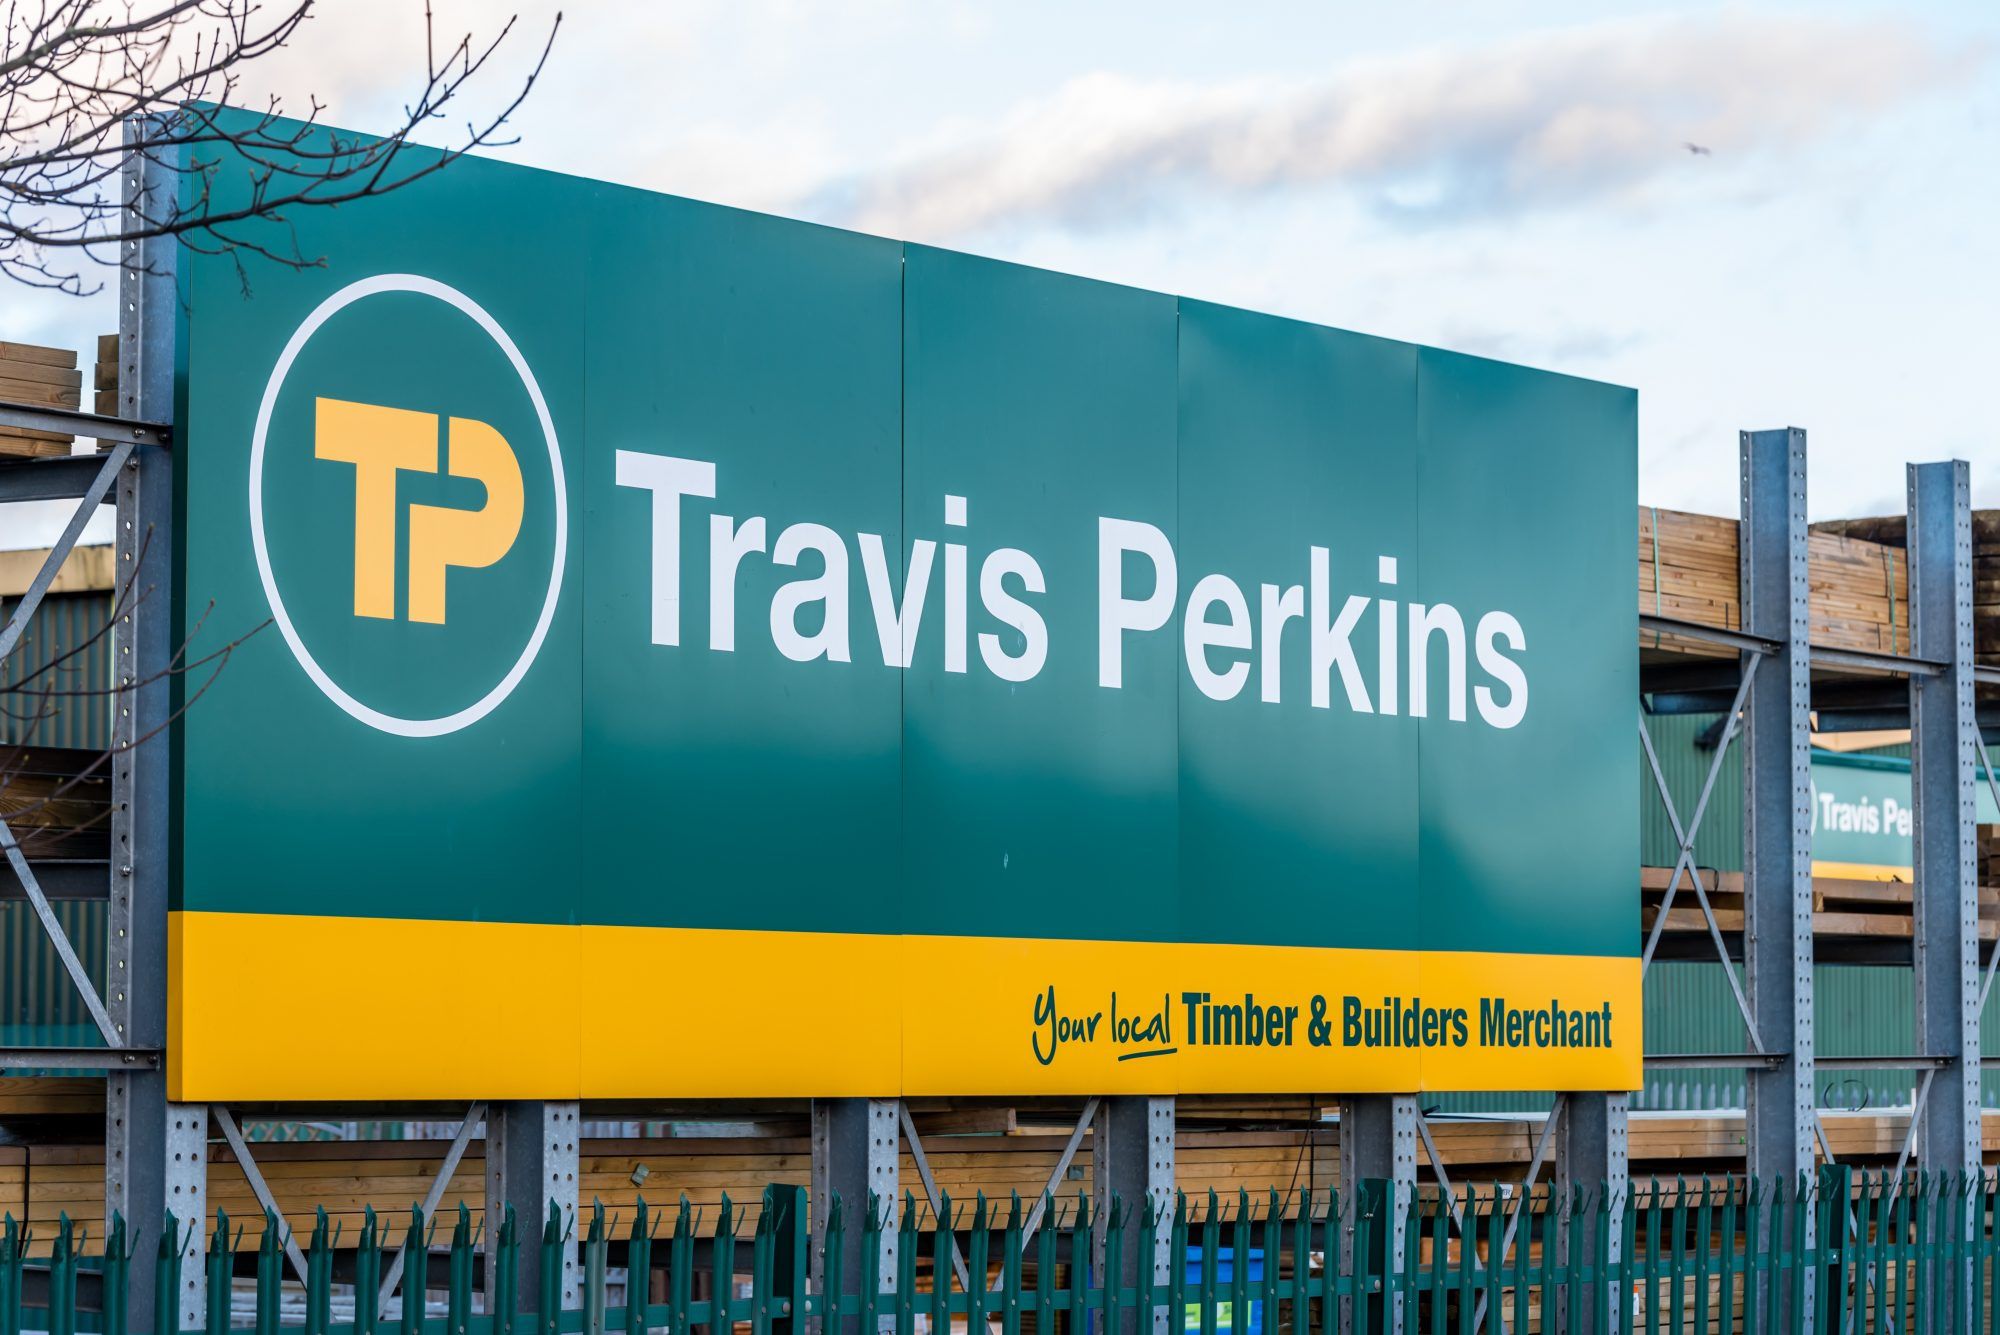 Travis Perkins plans to close 165 branches and cut 2,500 jobs